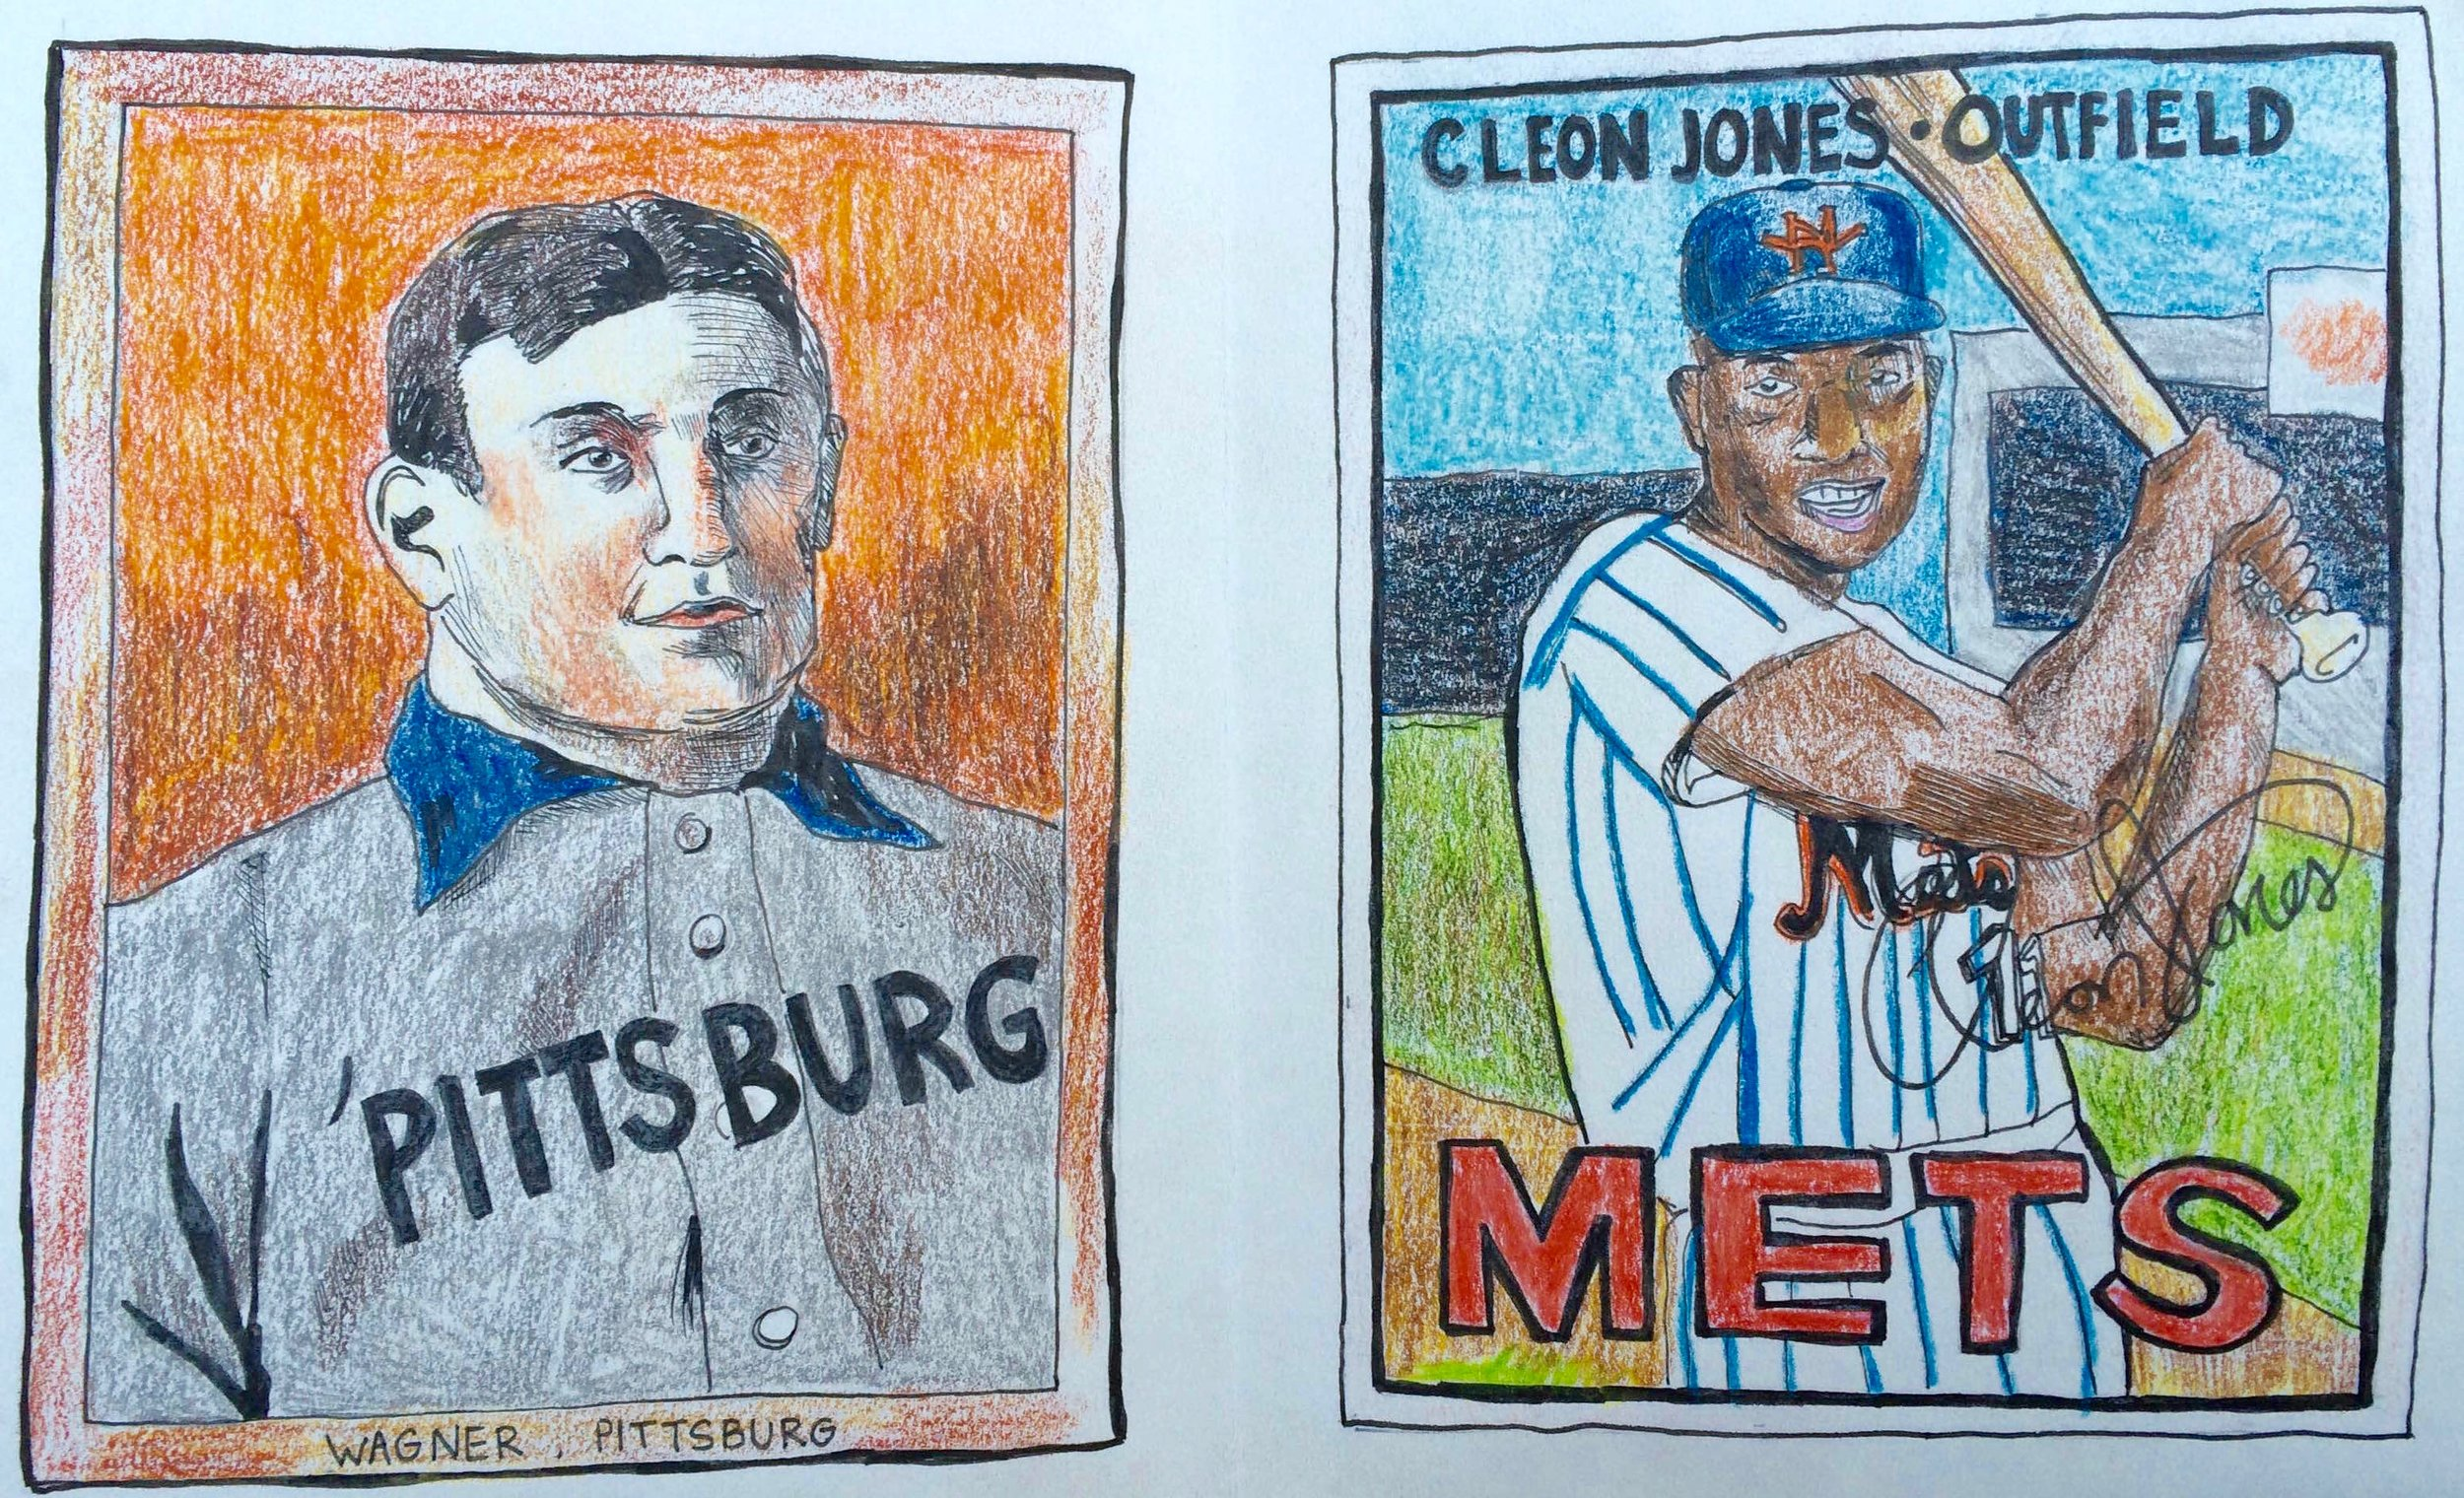 Drawing I made for my dad in 2015, Honus Wagner on the  left and Cleon Jones on the right.